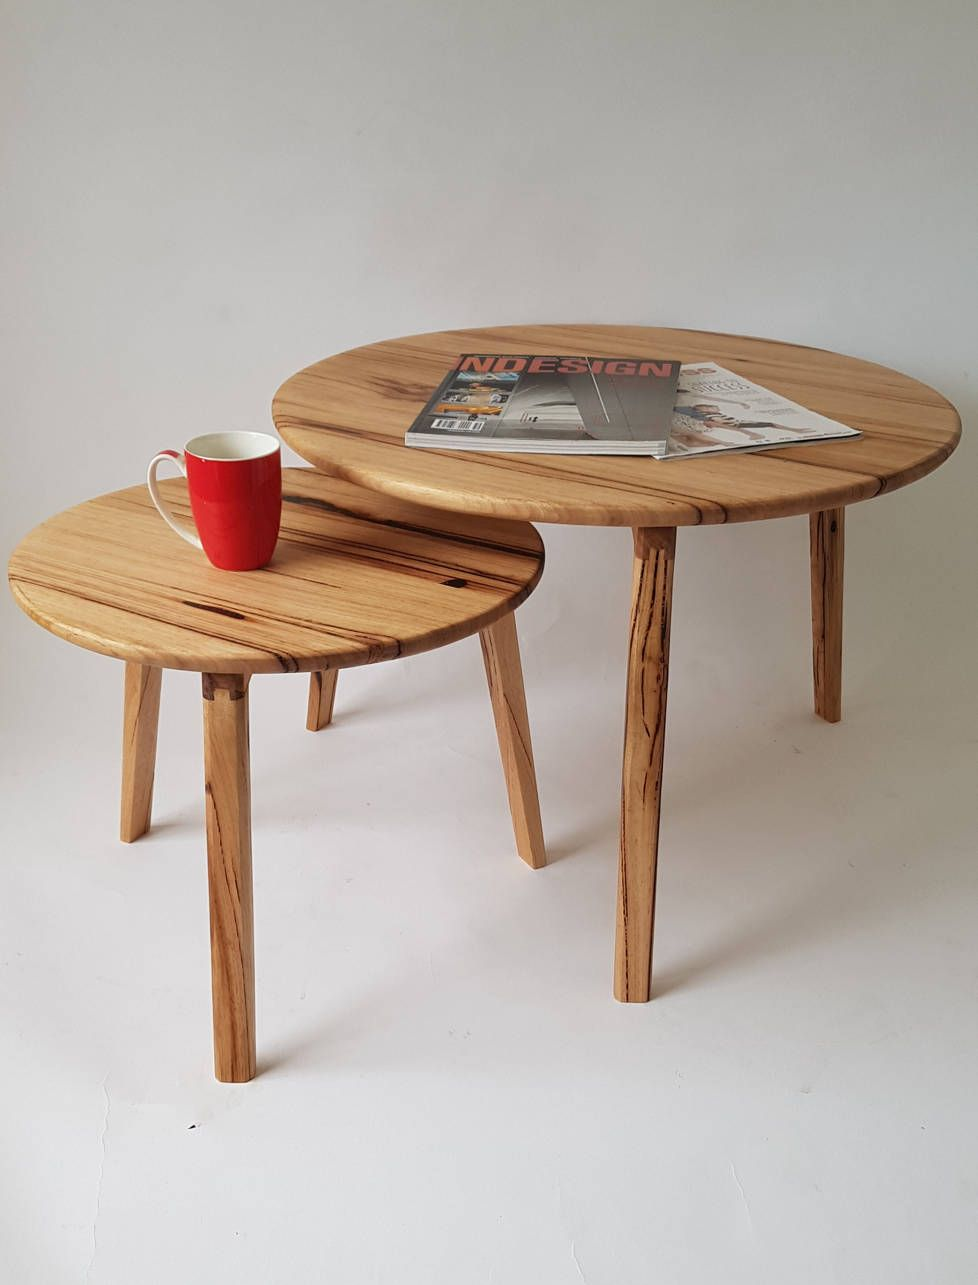 Get nesting coffee table with beautiful architecture we provide custom made furniture in brisbane sydney melbourne surrounding area